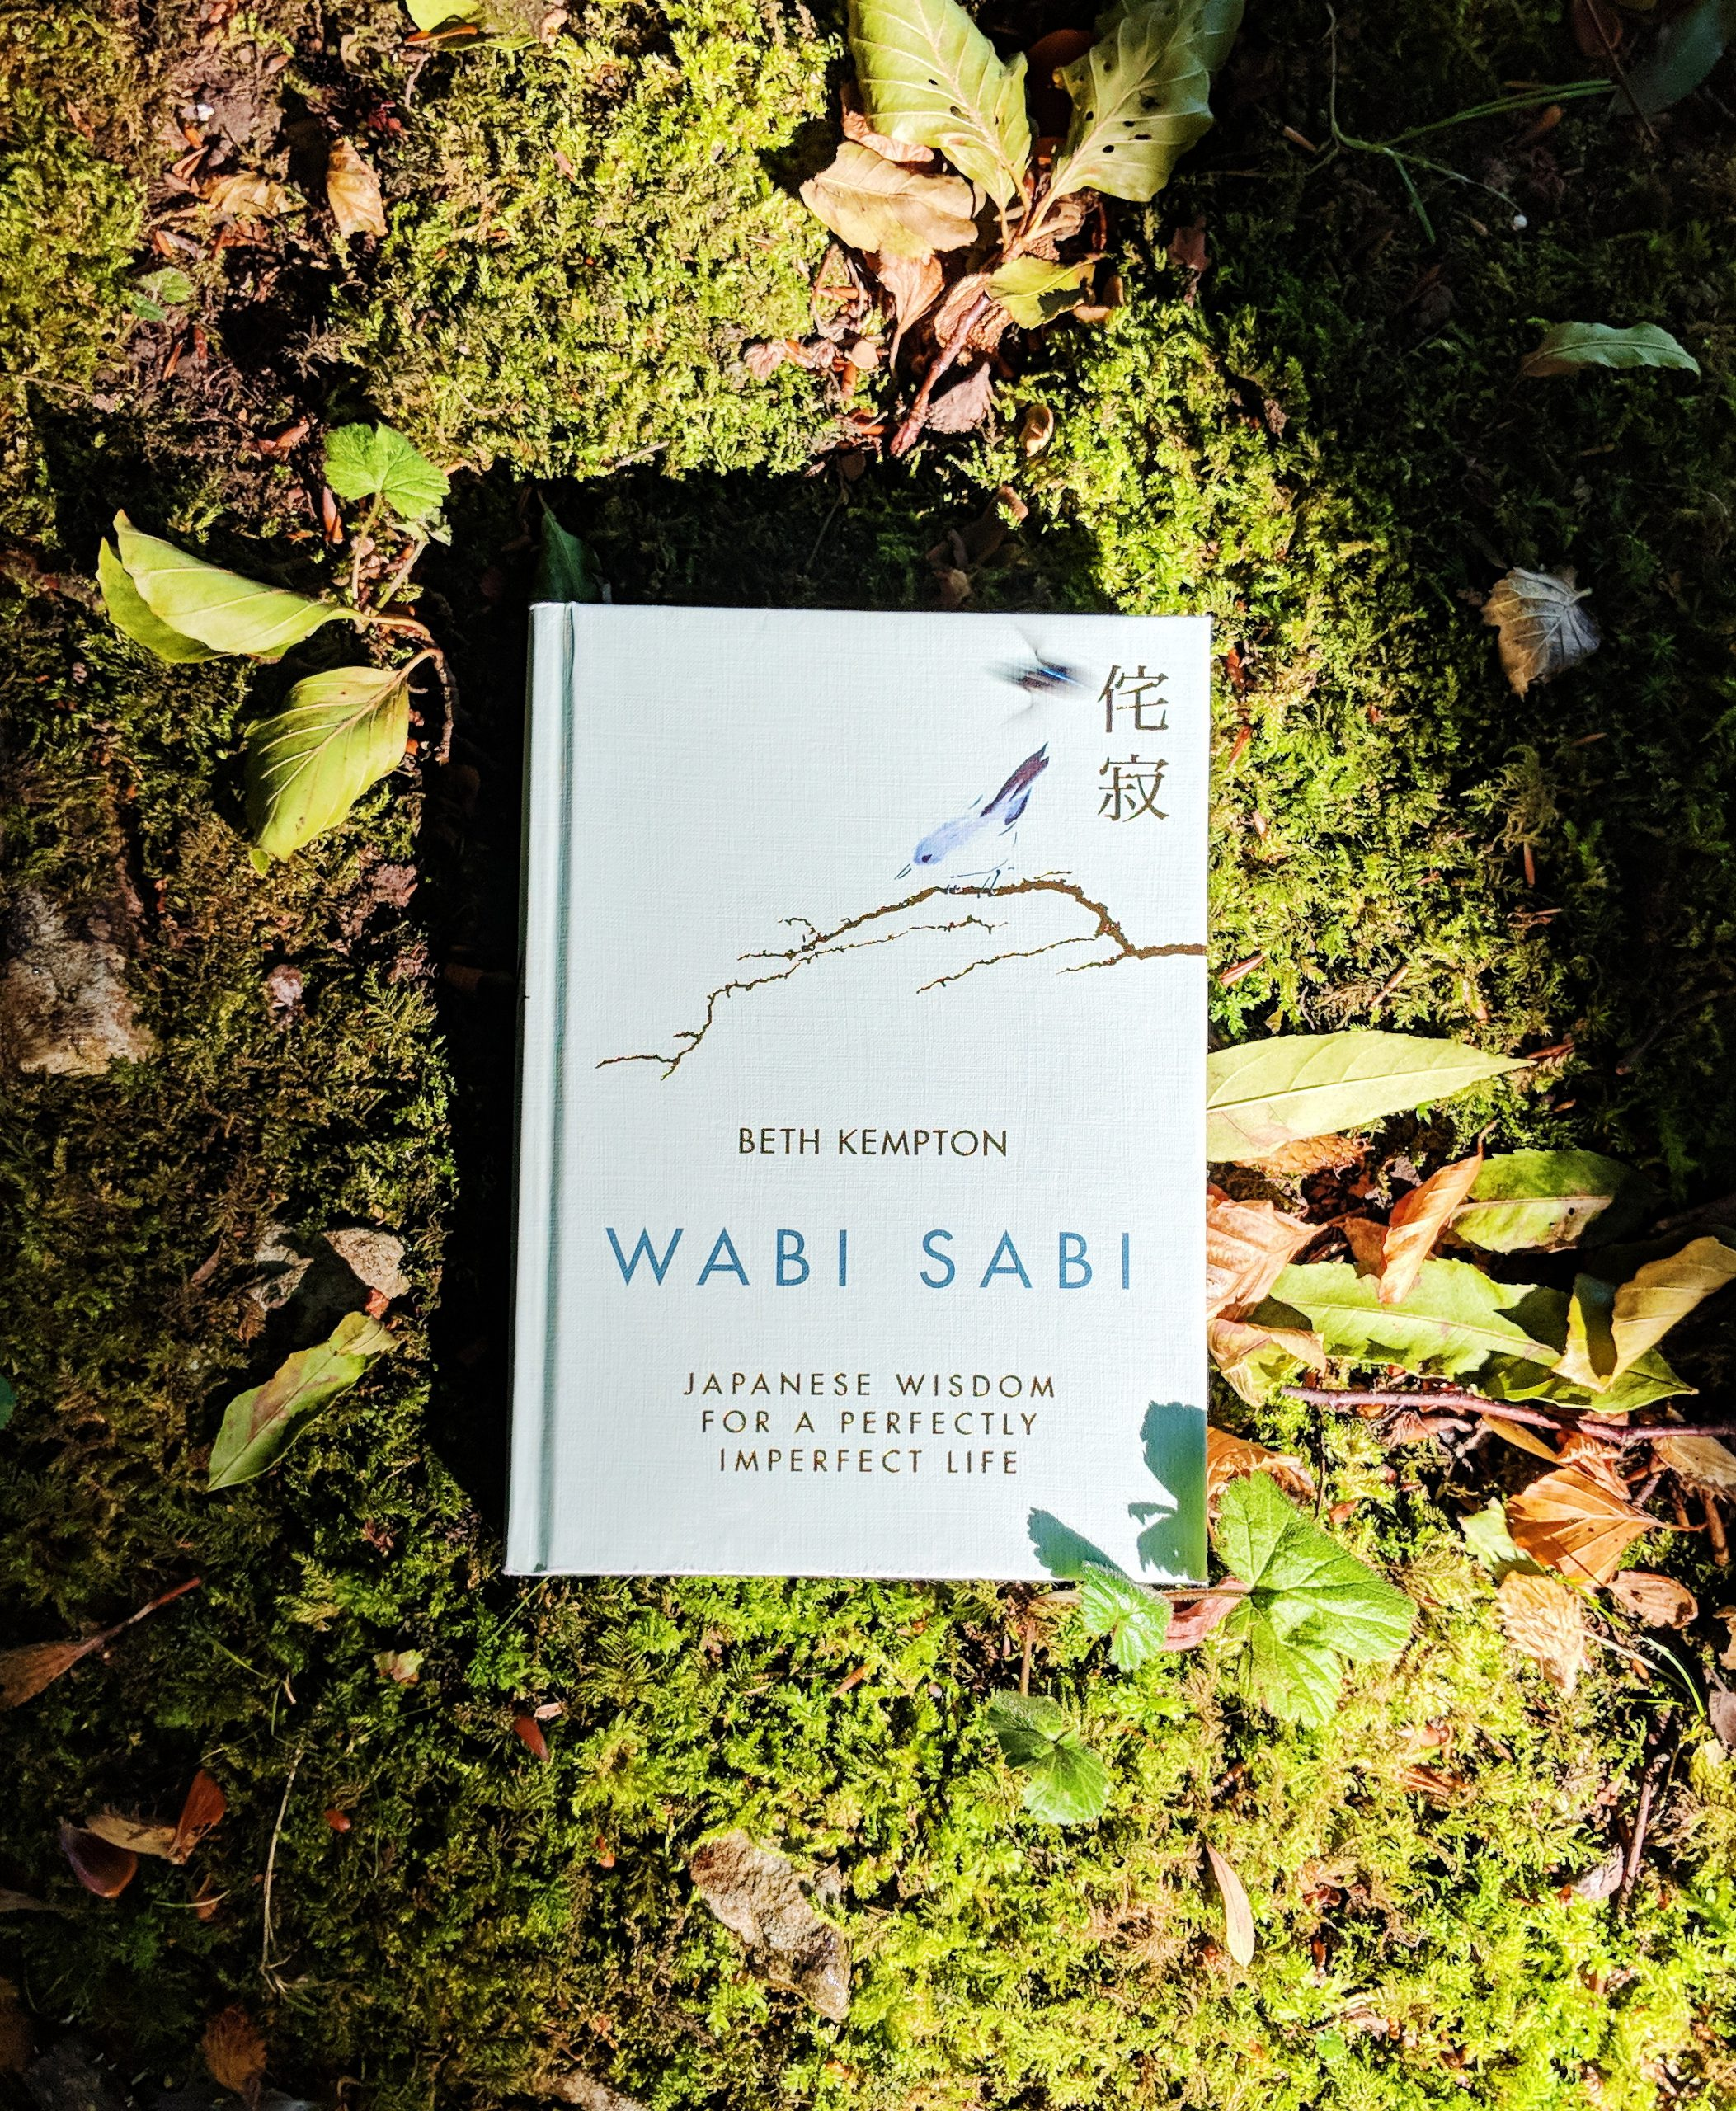 Book Review: Wabi Sabi: Japanese Wisdom for a Perfectly Imperfect Life by Beth Kempton